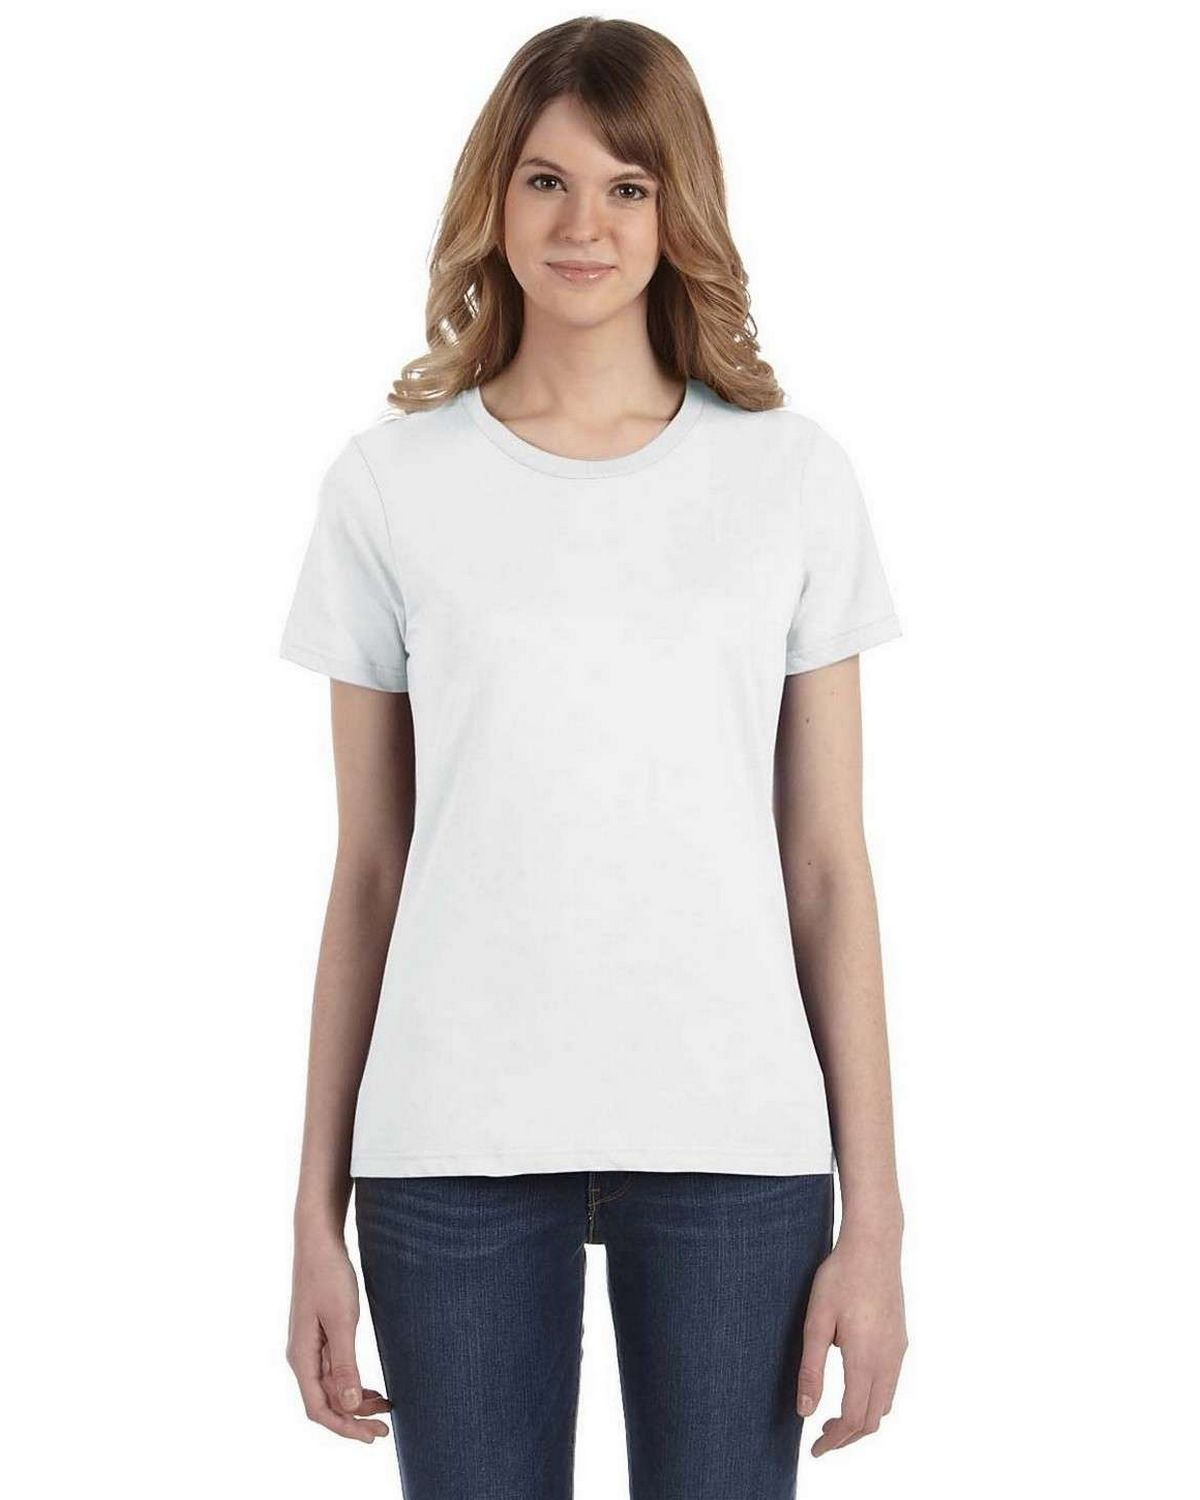 Anvil 880 Women's Ringspun Cotton Fashion Fit T-Shirt